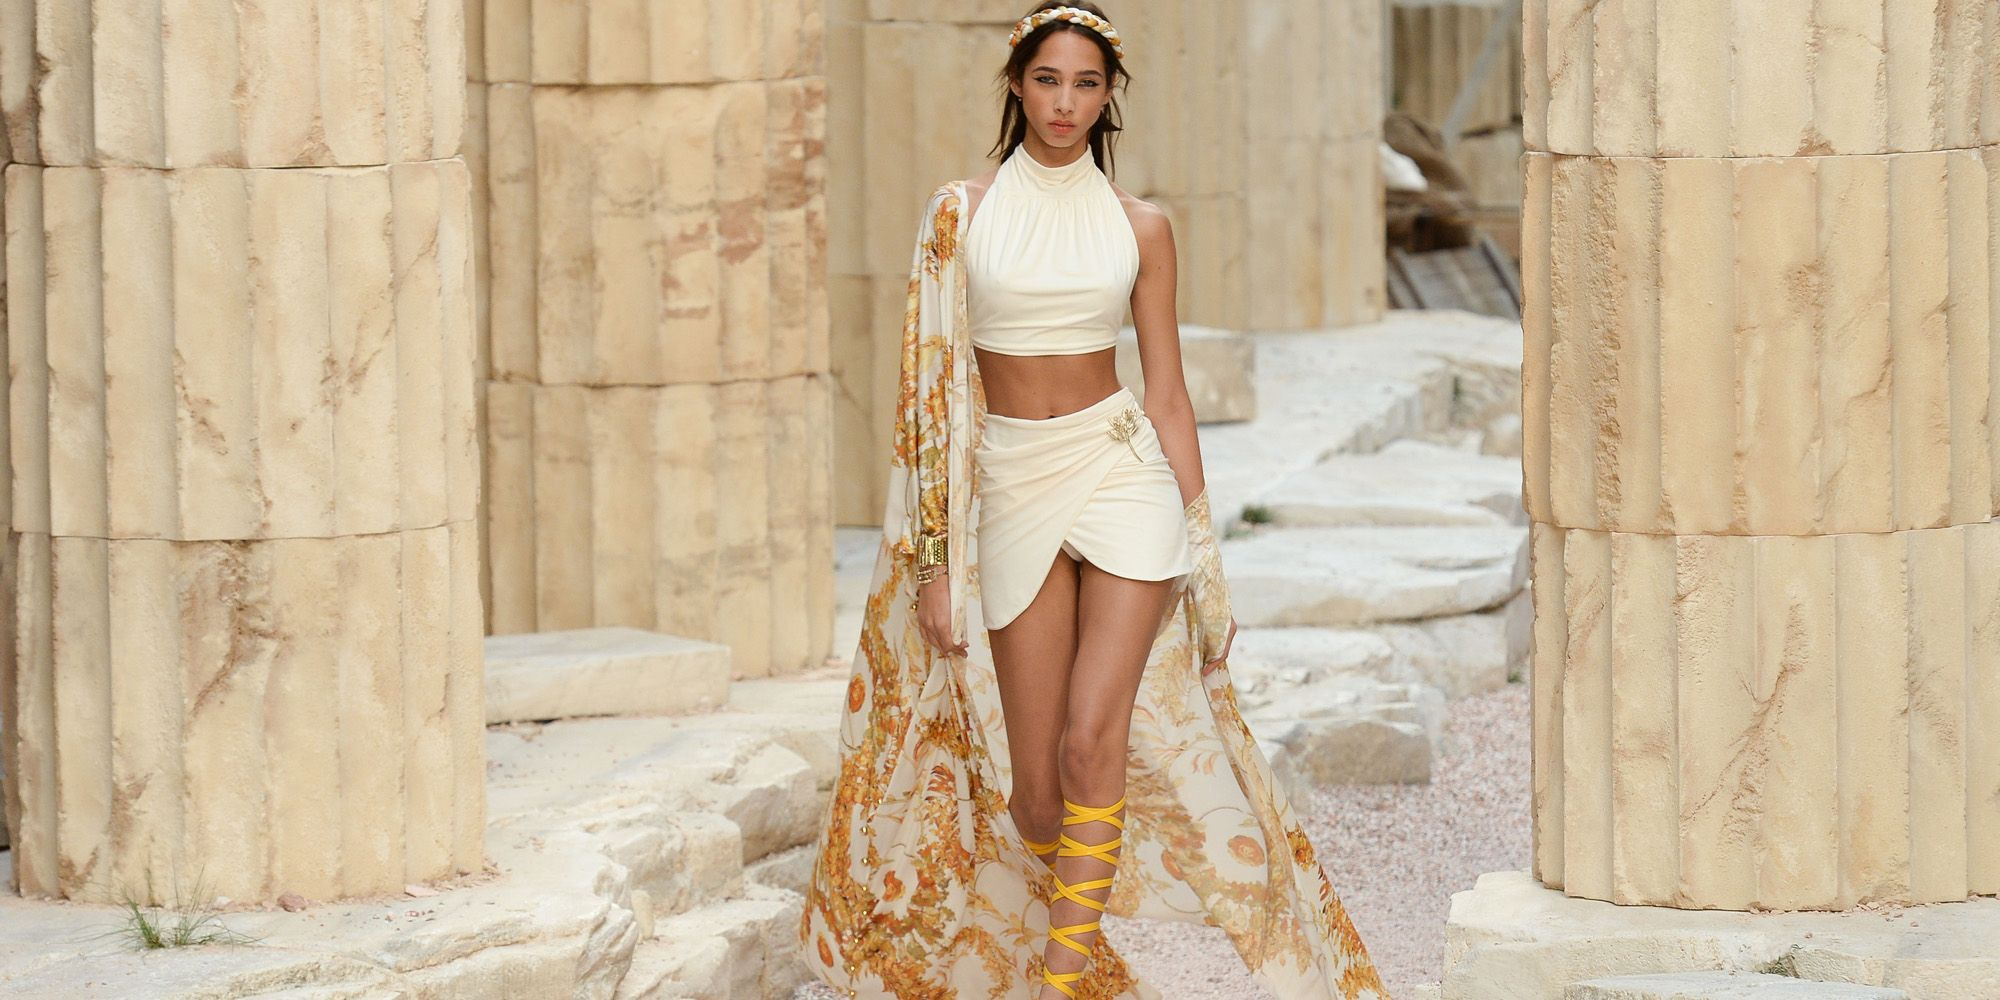 b3fedecd560e Chanel Cruise 2018 Collection - Chanel Cruise 2018 Ancient Greece in ...